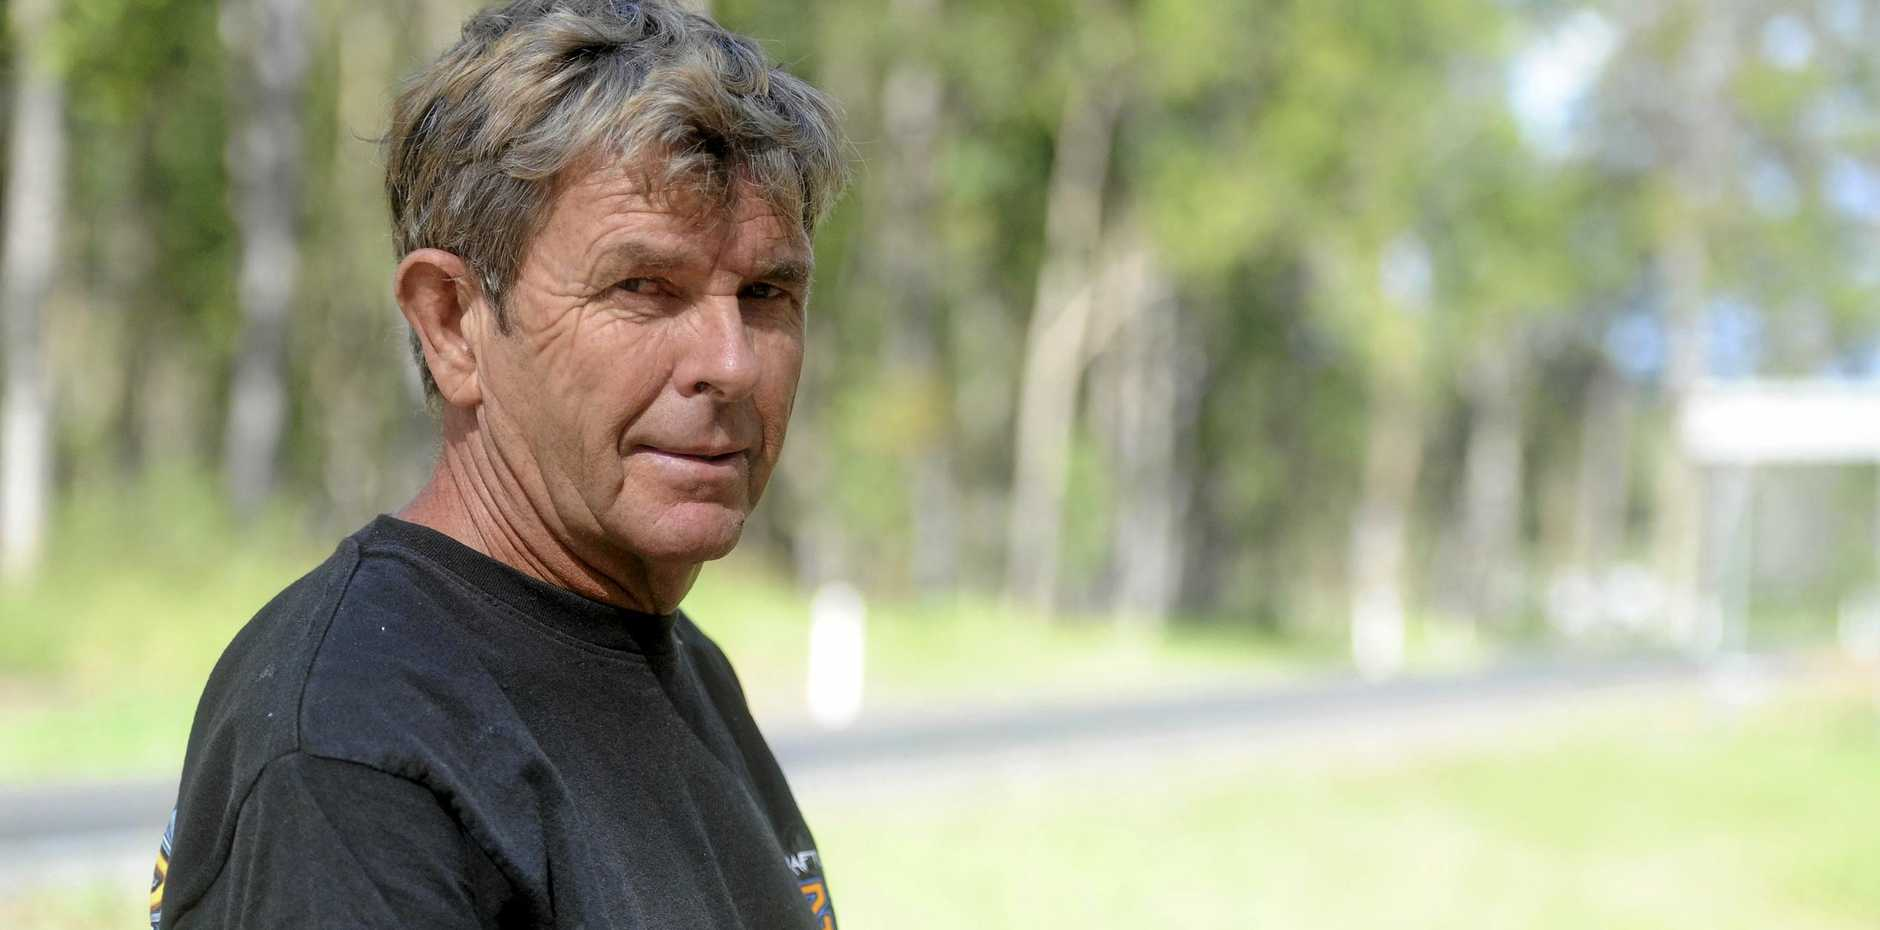 WORRIED: Glenugie resident Dick Hughes is concerned about the plans for Eight Mile Lane to be used as an access point to the new Pacific Highway.